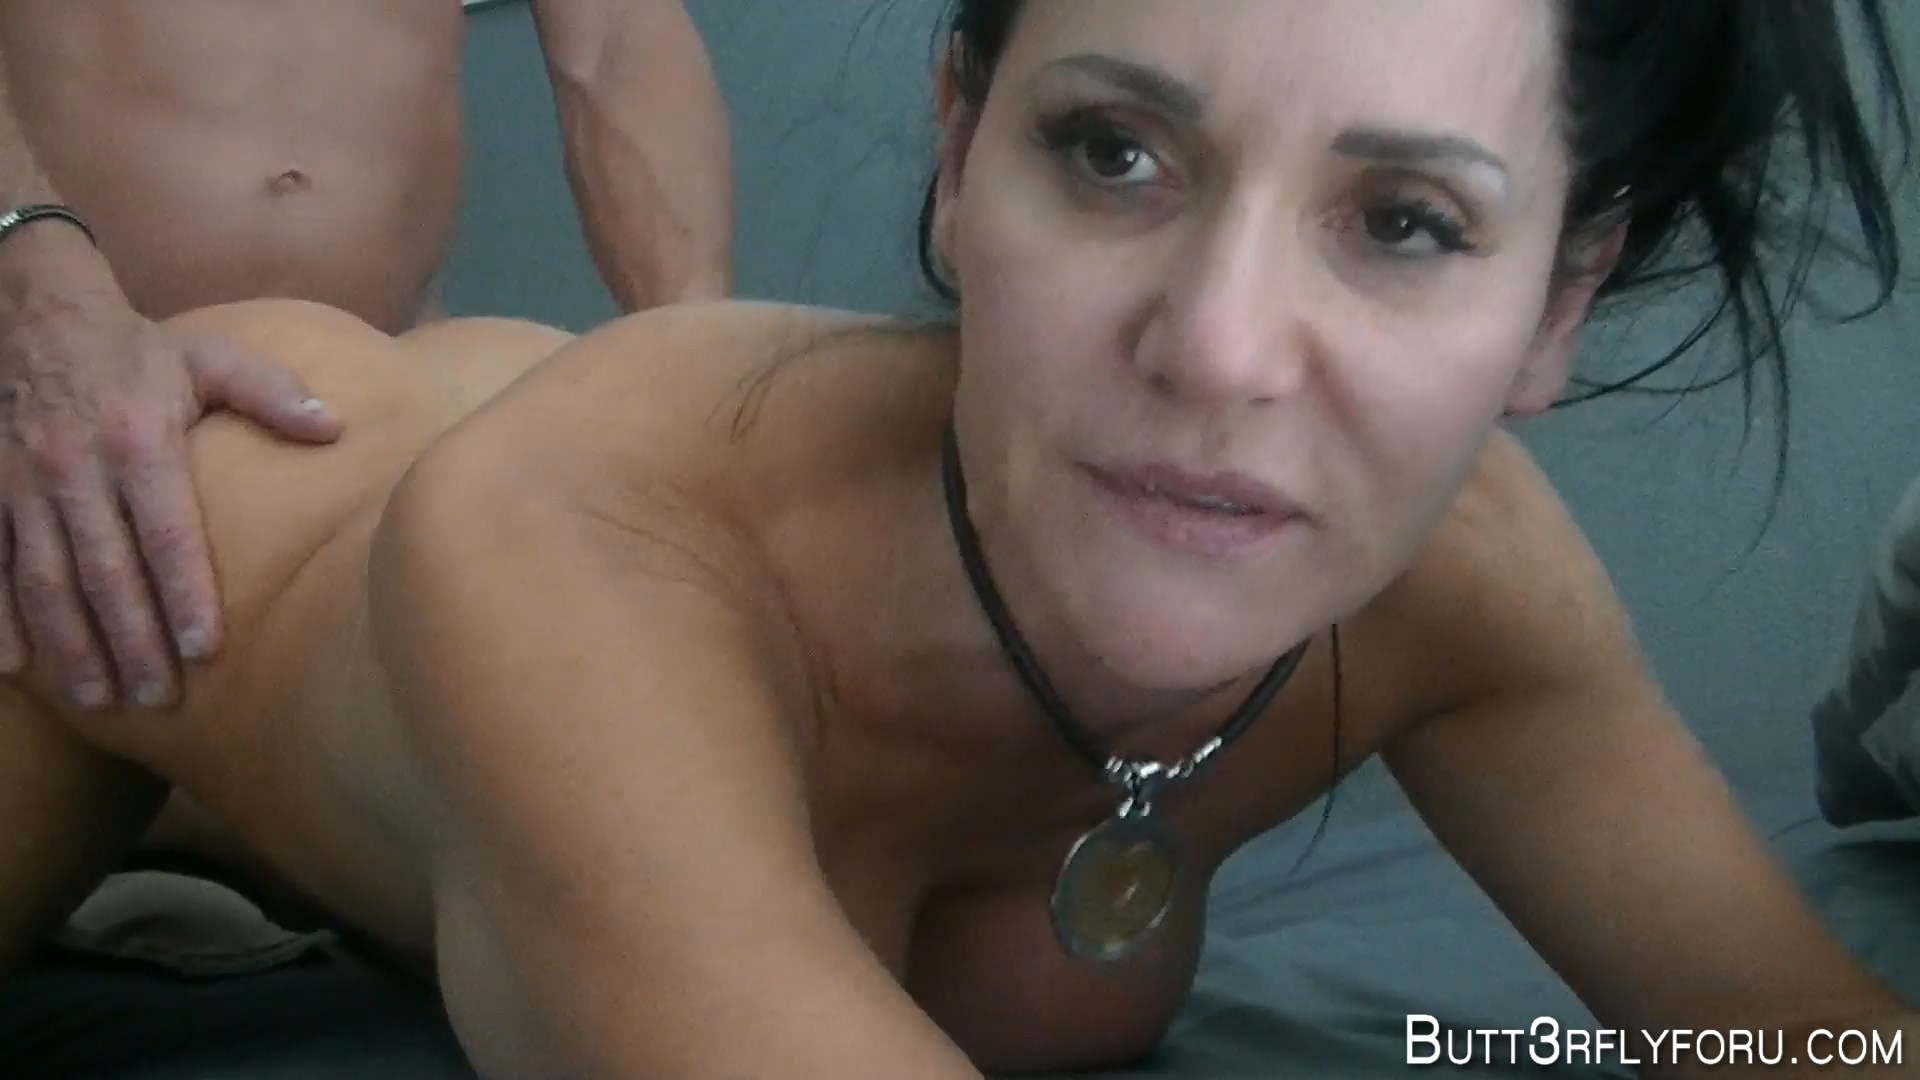 Let's Make A Sex Video For Your Dad To Watch - Butt3rflyforU Fantasies